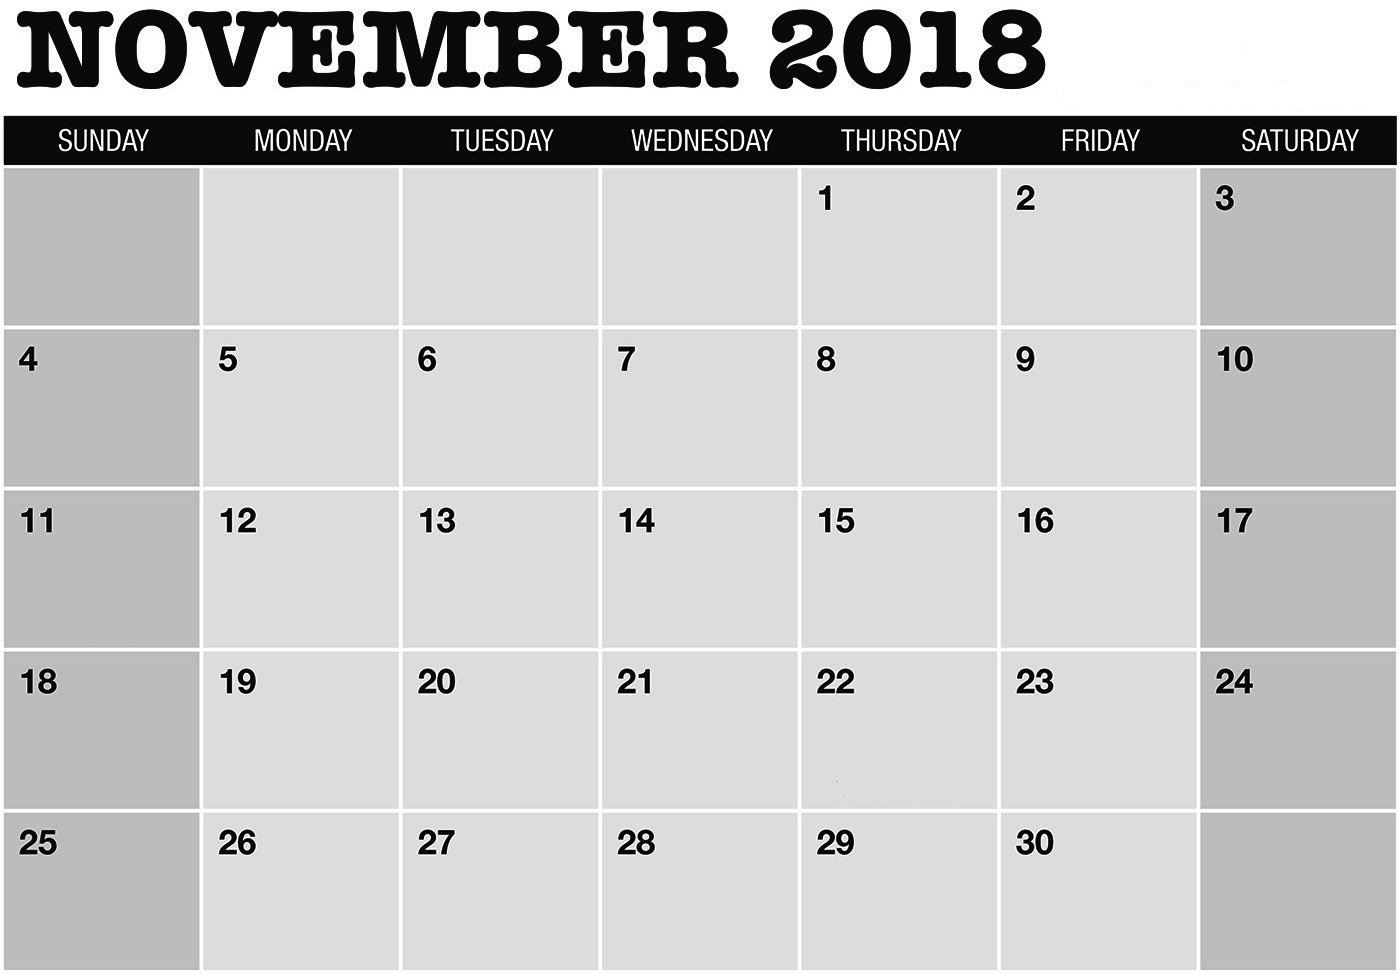 november 2018 a4 calendar printable template download may 2018::November 2018 Calendar Printable Template